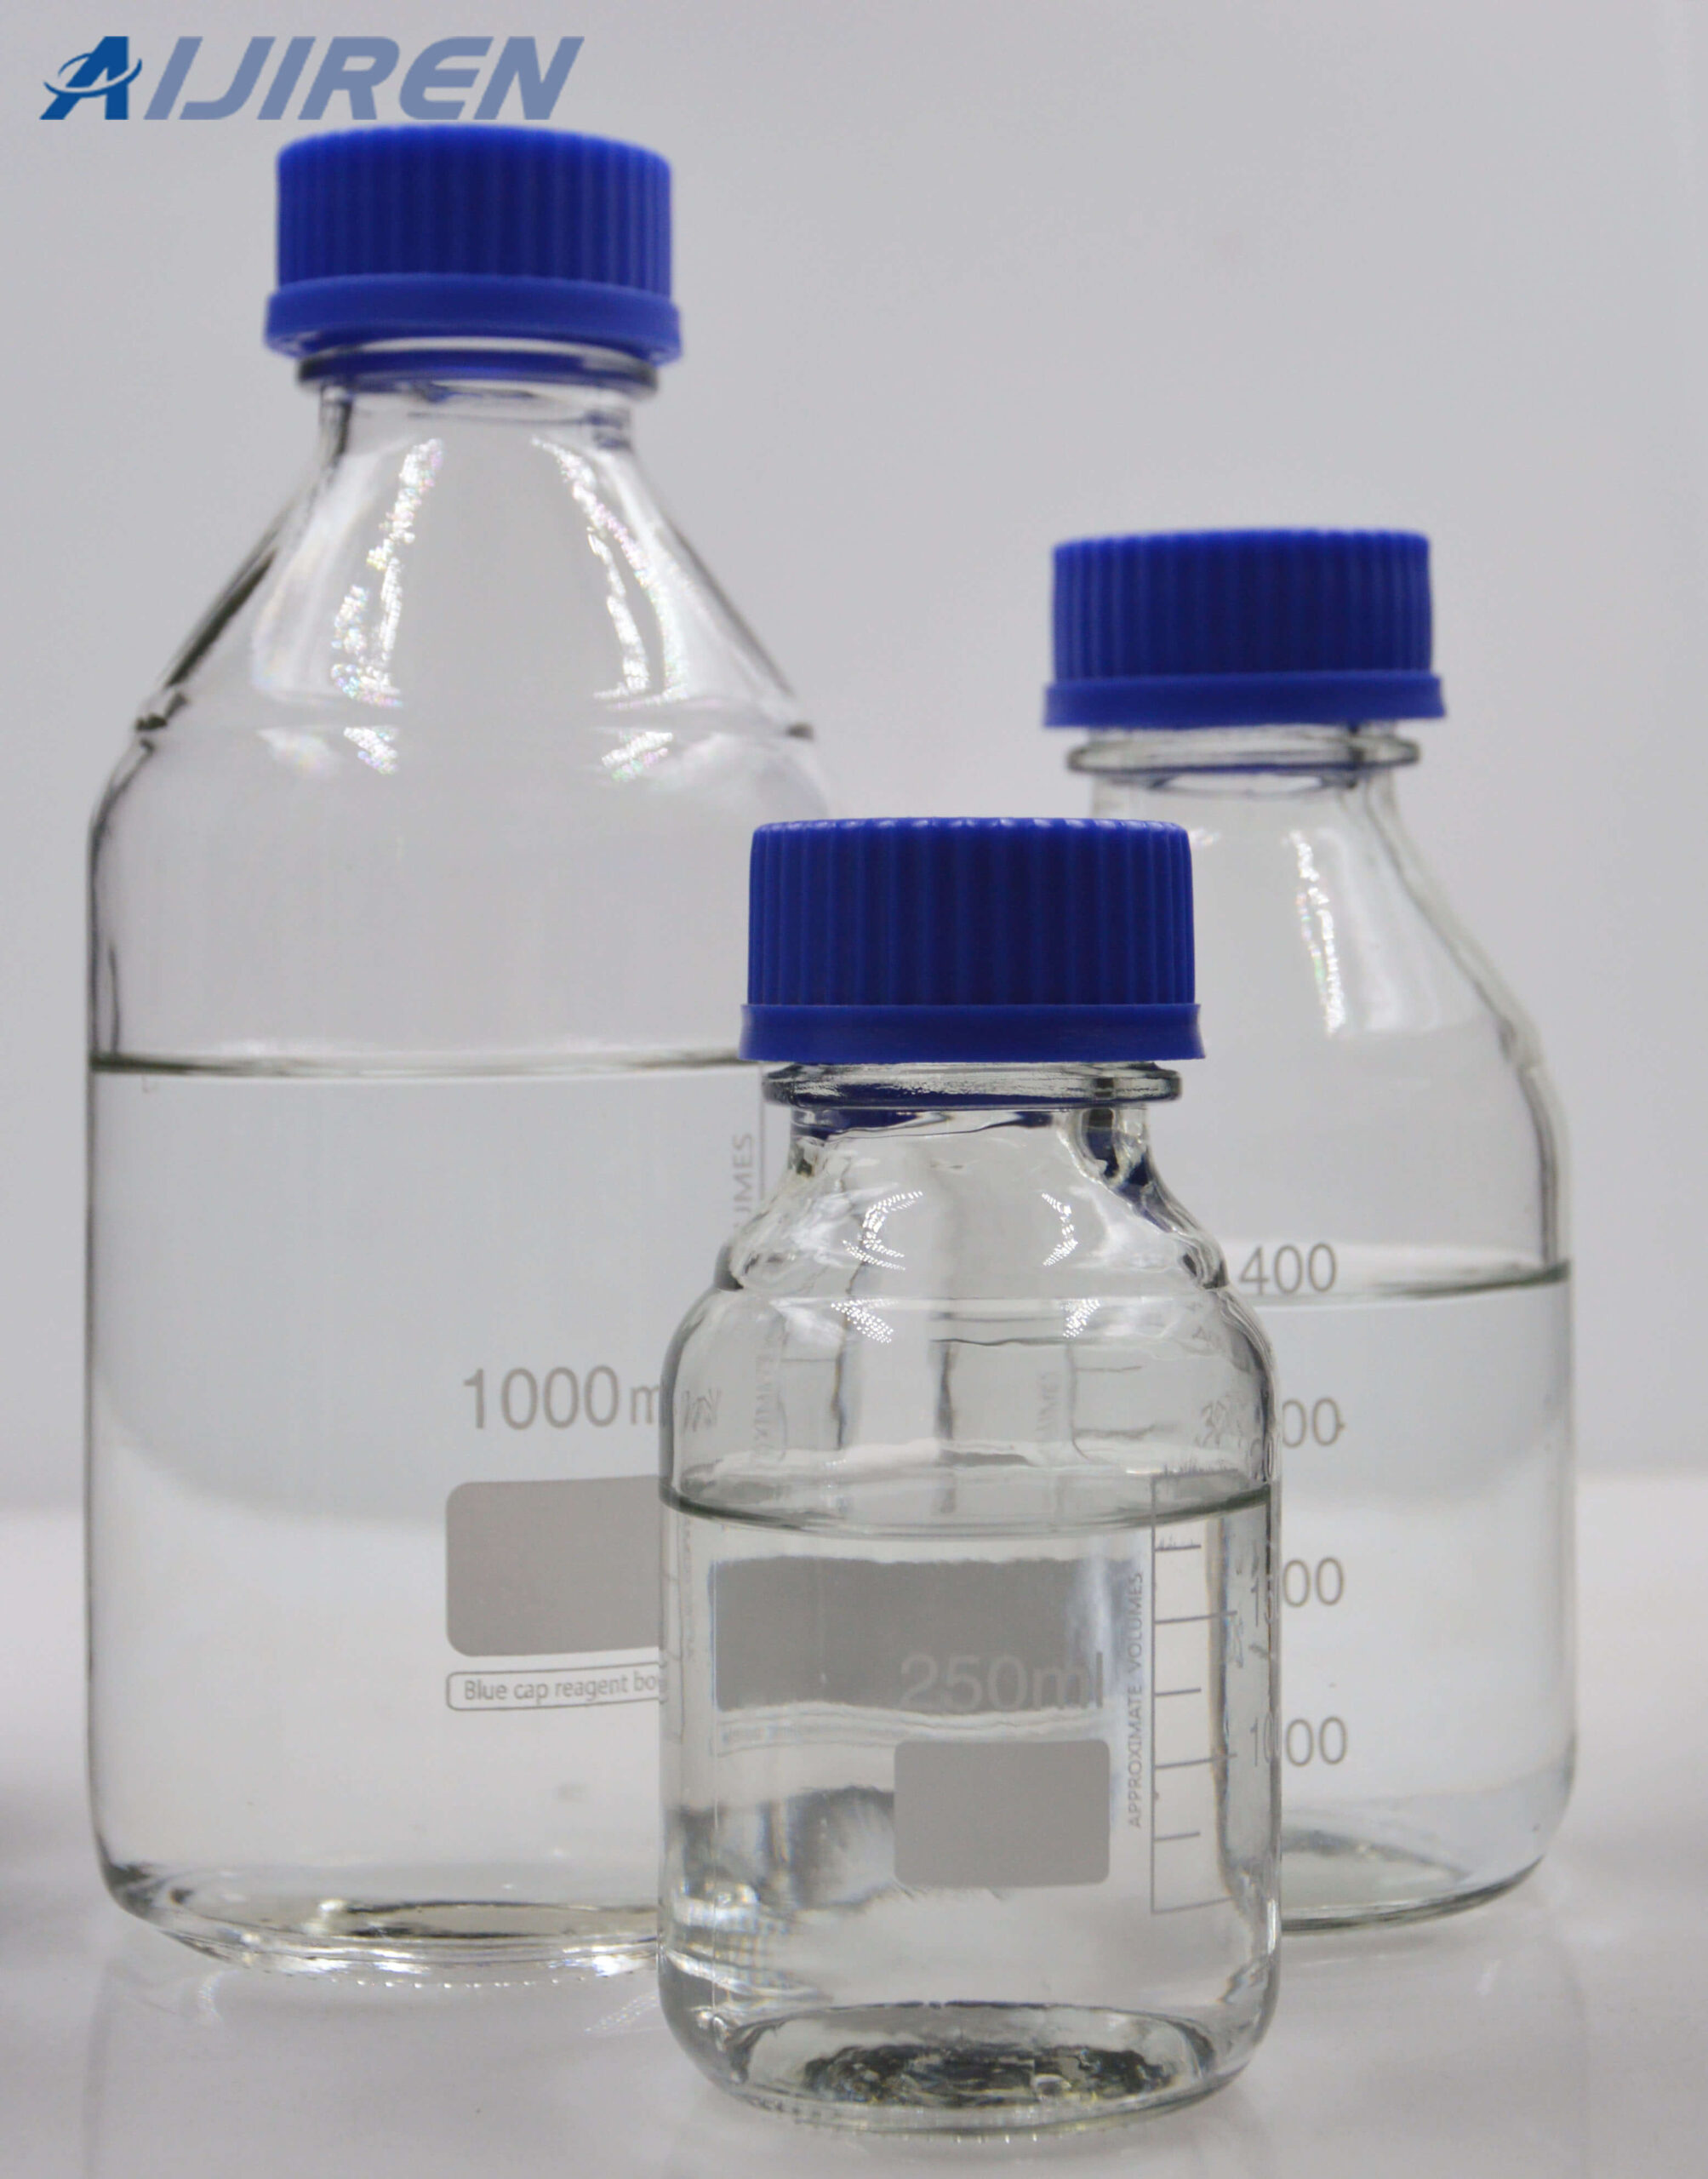 20ml headspace vial1000ml Wide Mouth Reagent Bottle for Sale